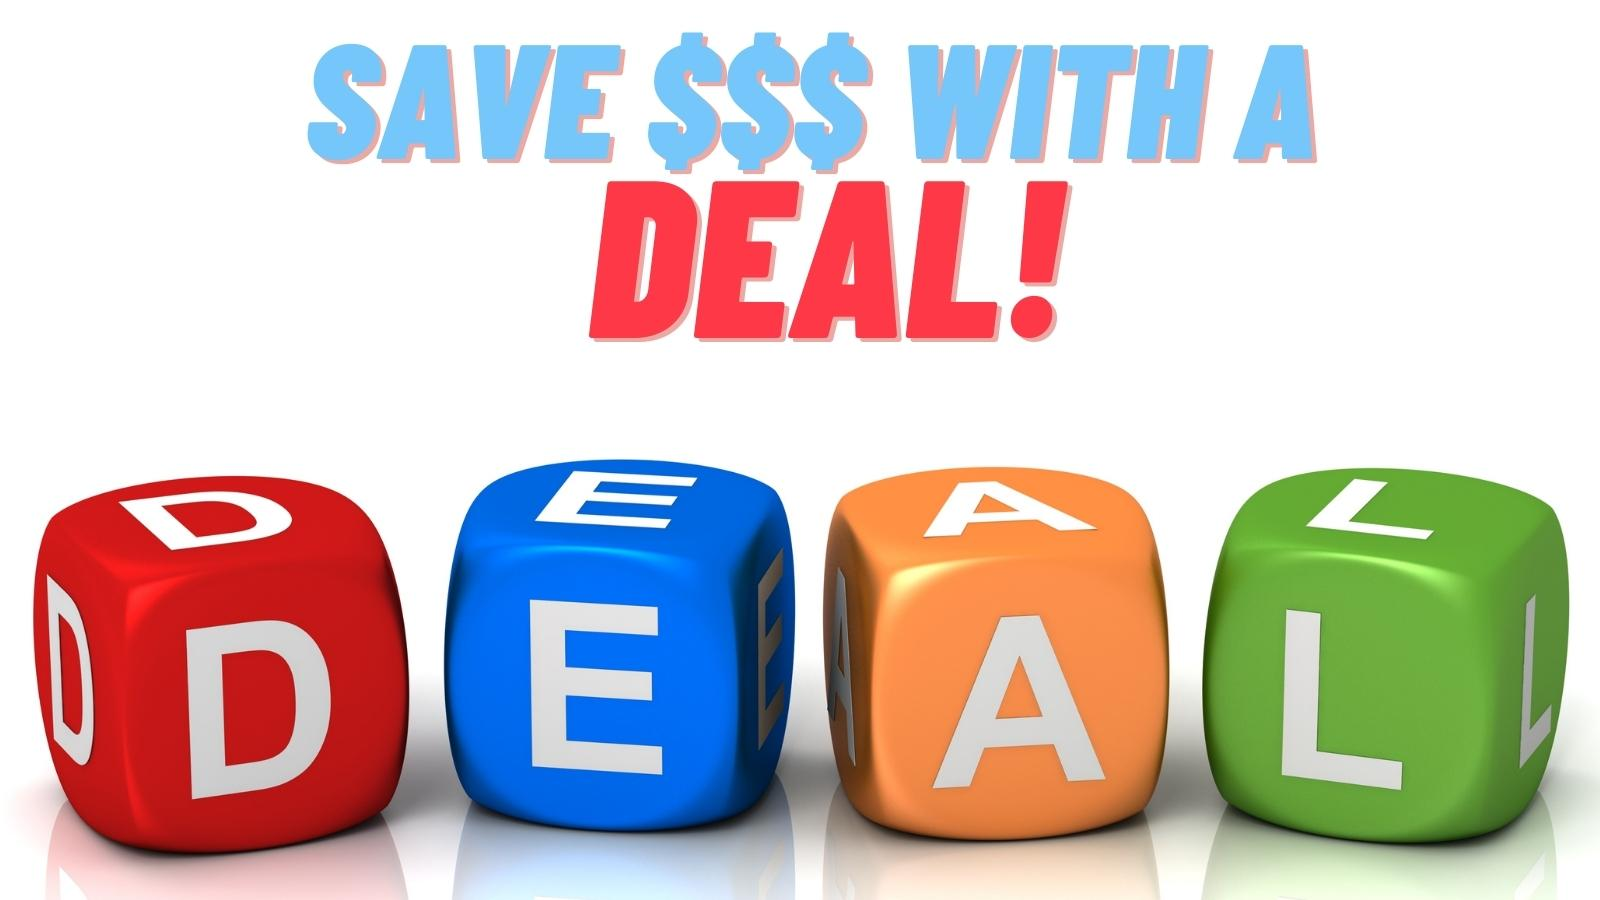 save money with a deal on purchases